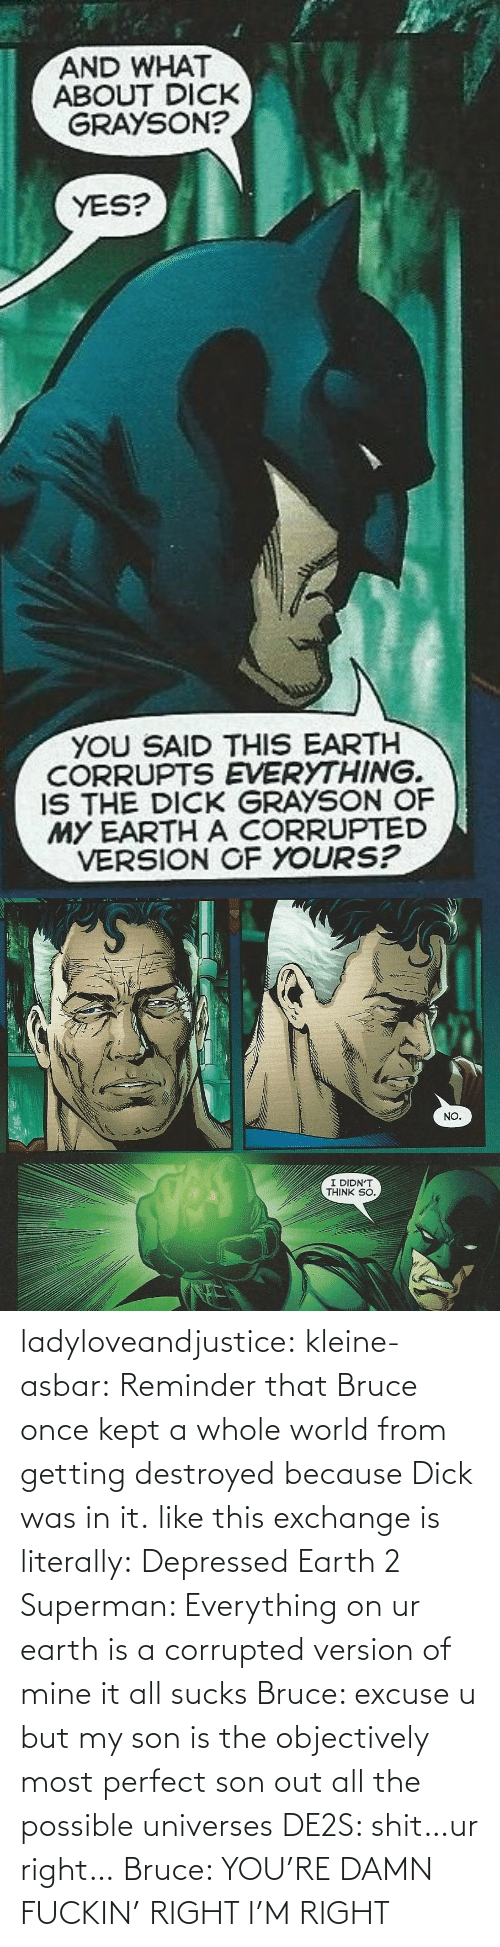 Kept: ladyloveandjustice:  kleine-asbar: Reminder that Bruce once kept a whole world from getting destroyed because Dick was in it. like this exchange is literally: Depressed Earth 2 Superman: Everything on ur earth is a corrupted version of mine it all sucks Bruce: excuse u but my son is the objectively most perfect son out all the possible universes DE2S: shit…ur right… Bruce: YOU'RE DAMN FUCKIN' RIGHT I'M RIGHT